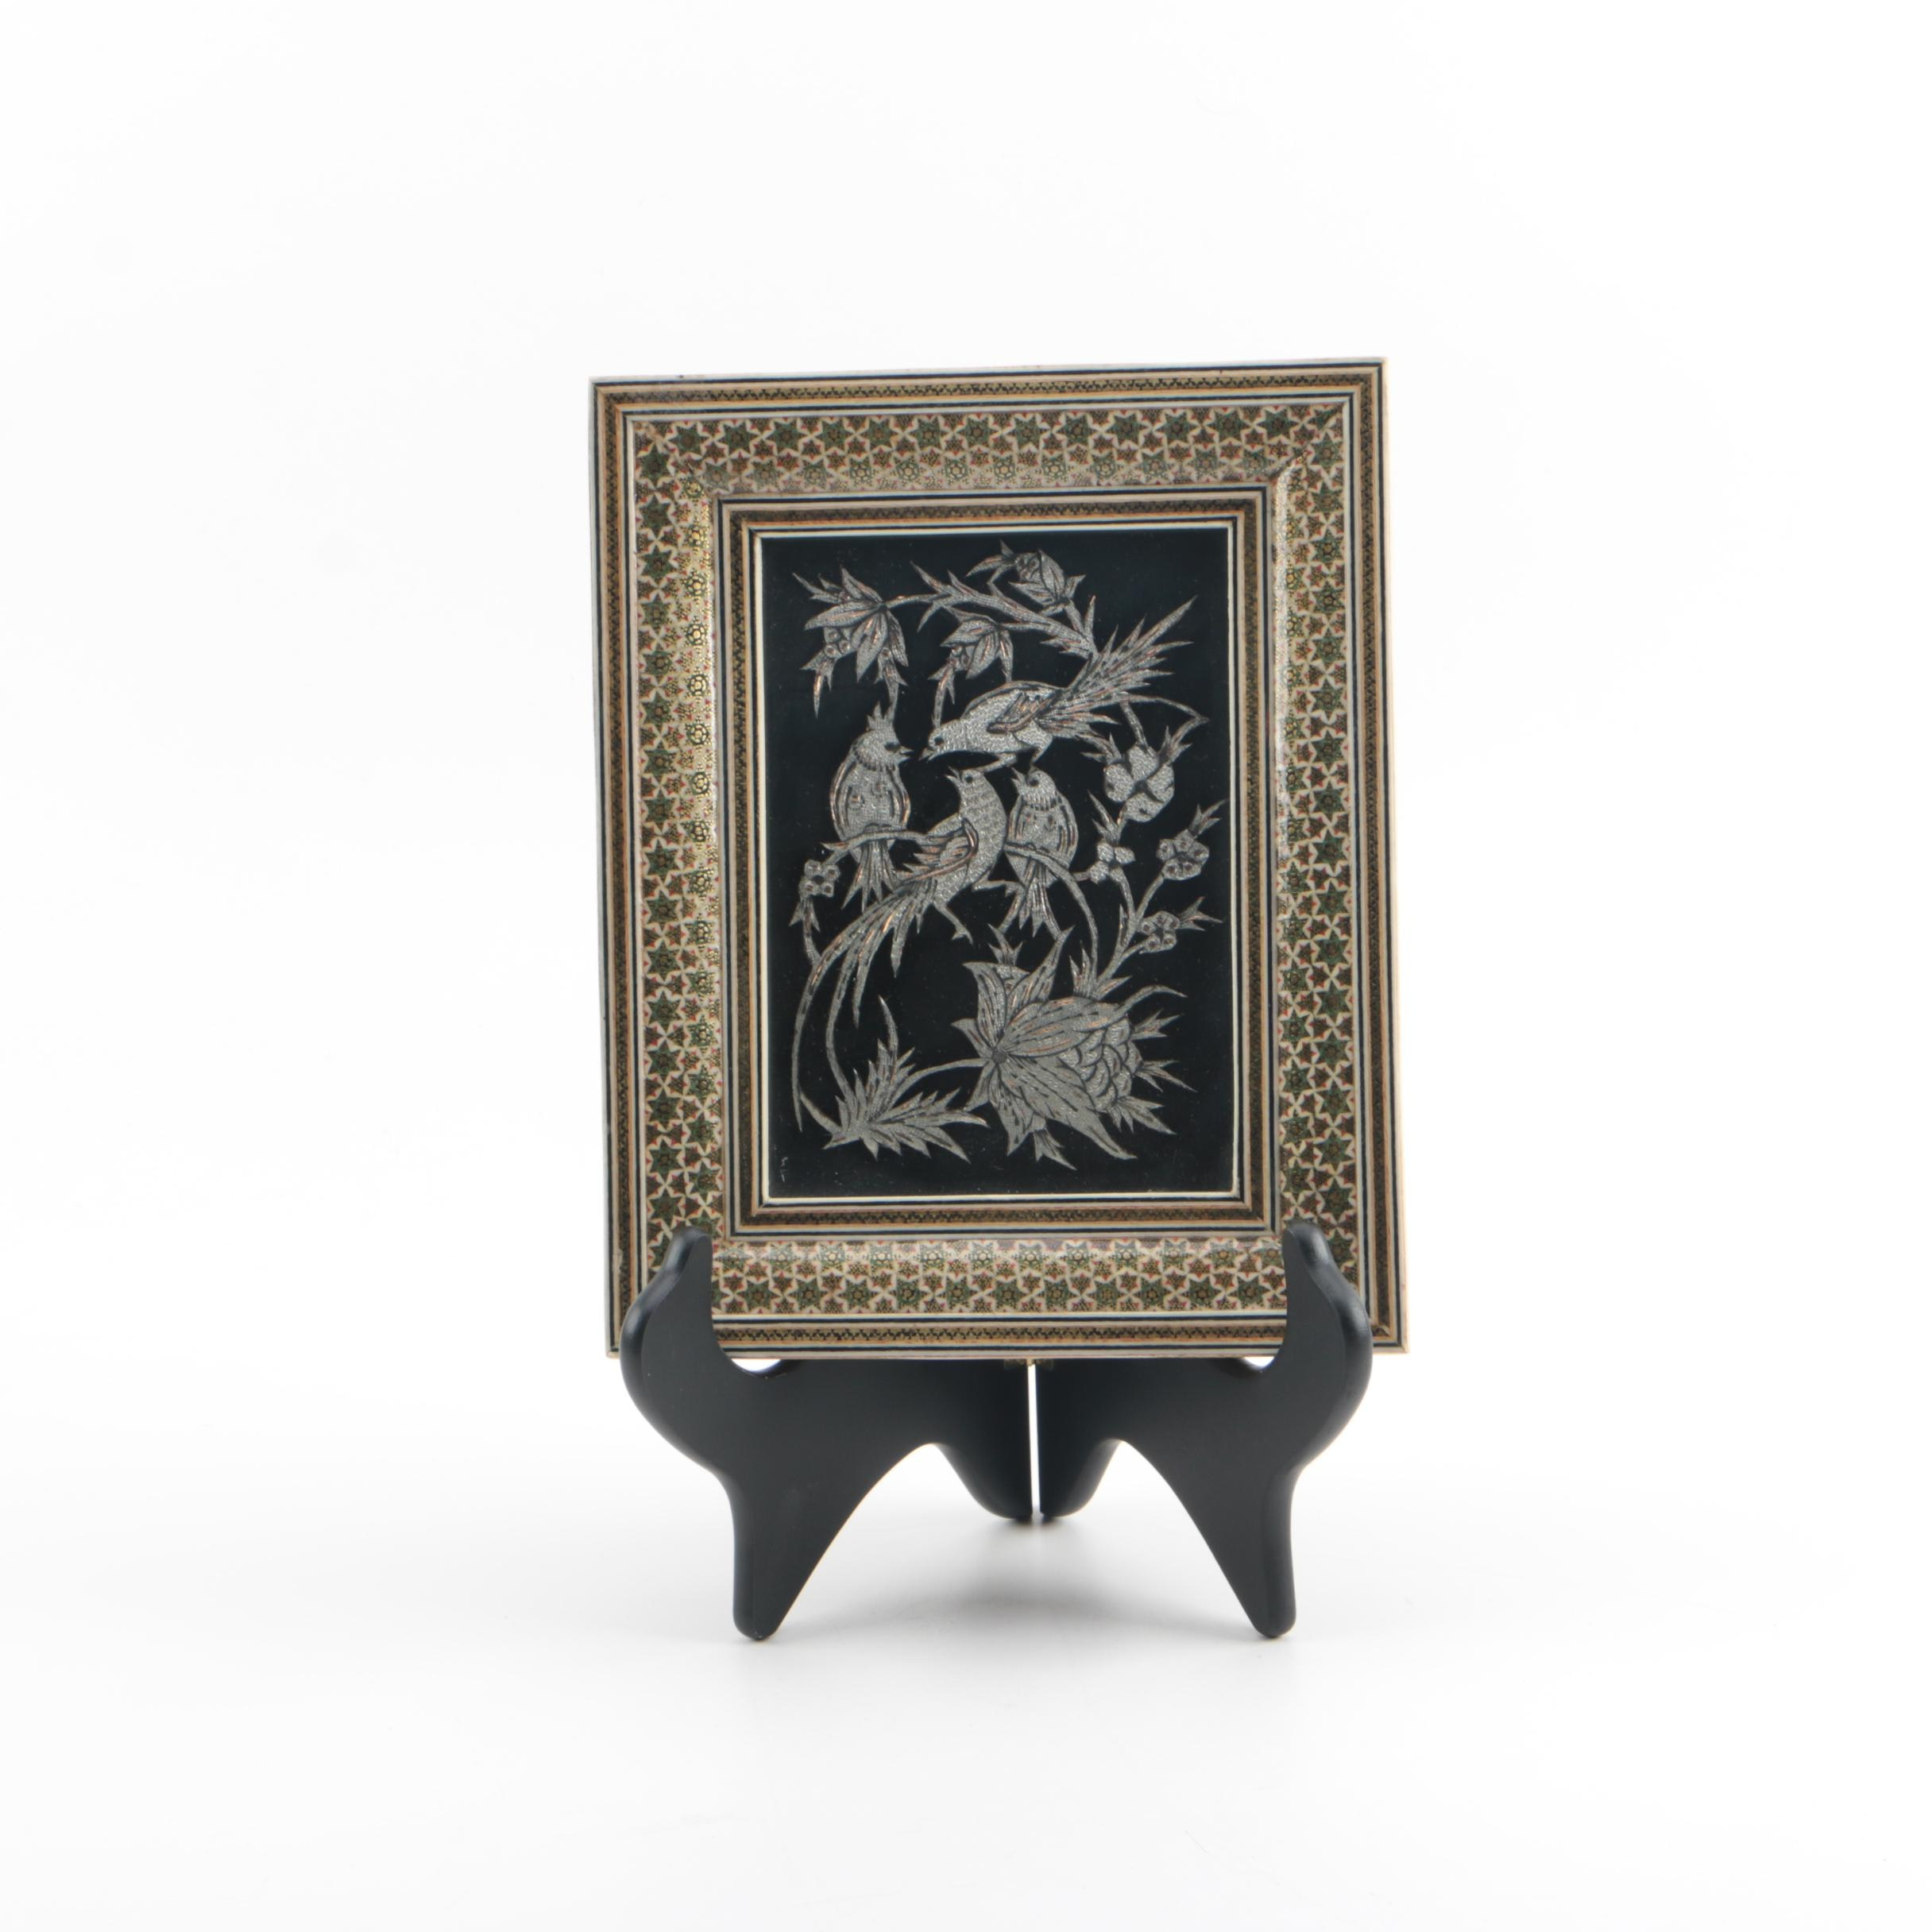 Indo-Persian Artwork of Birds In Ornate Inlaid Frame